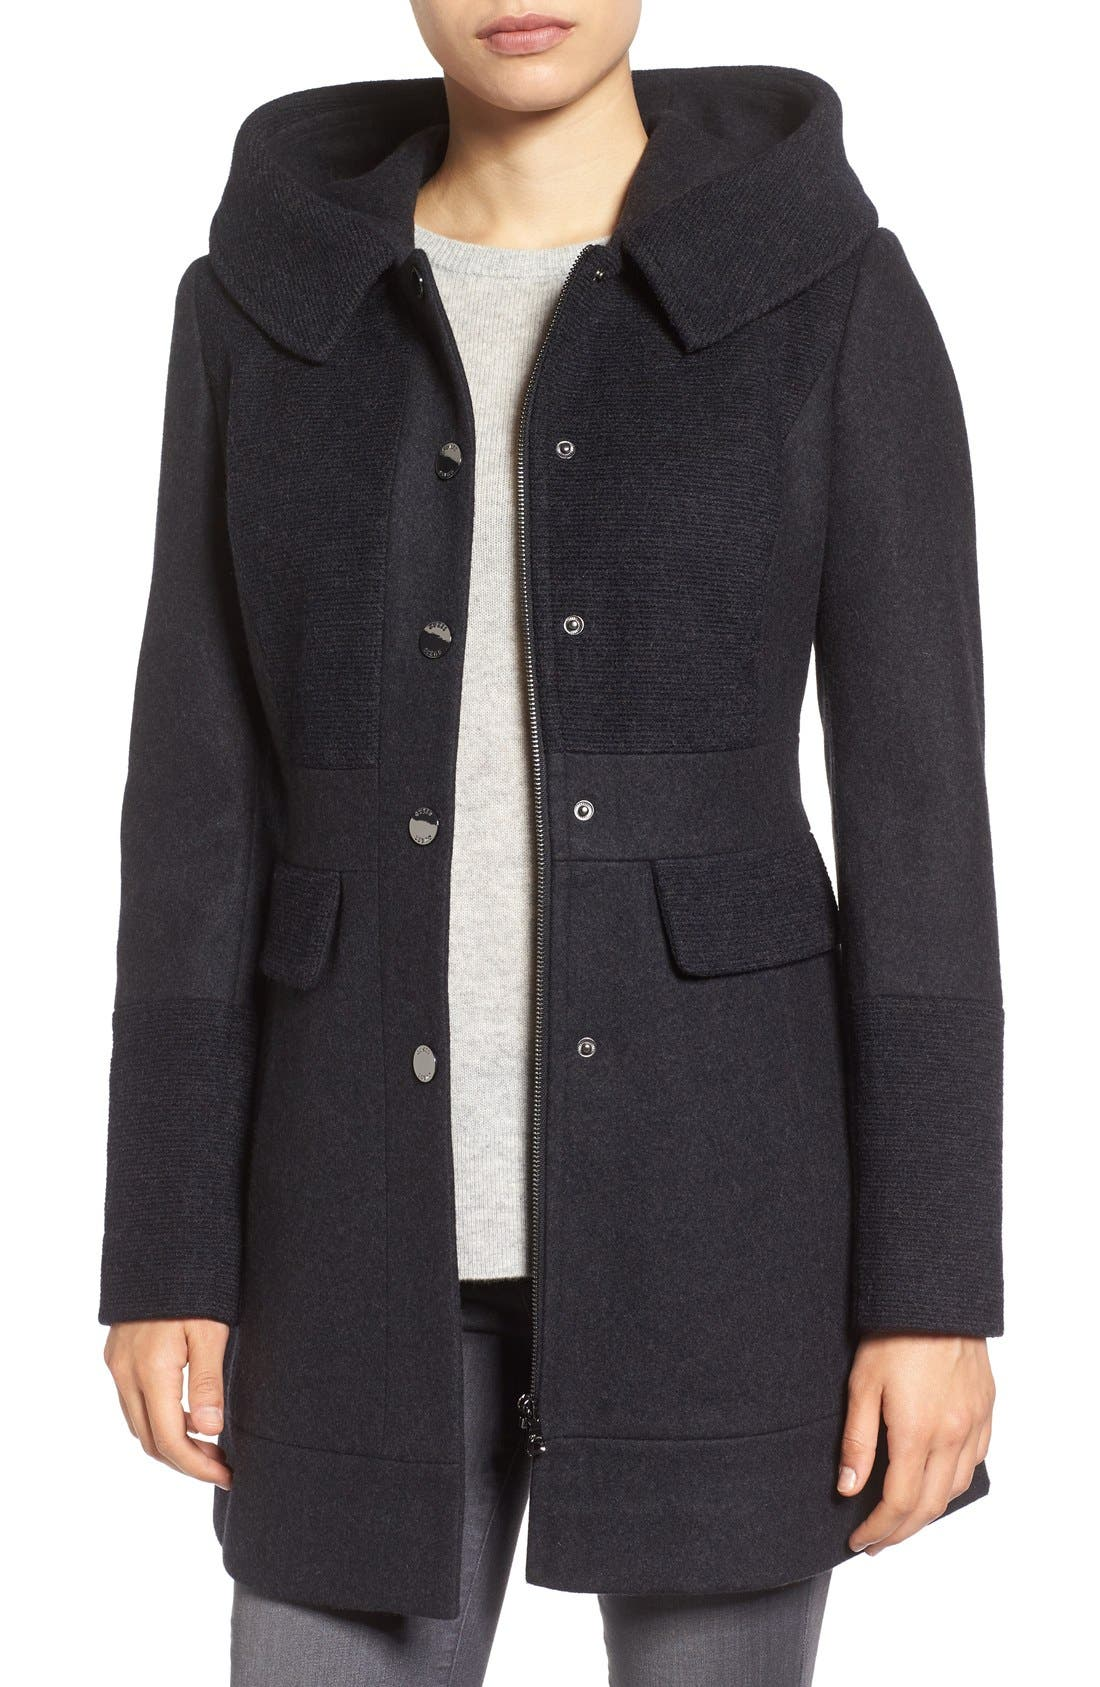 Wool Blend Hooded Coat,                         Main,                         color, Charcoal/ Black